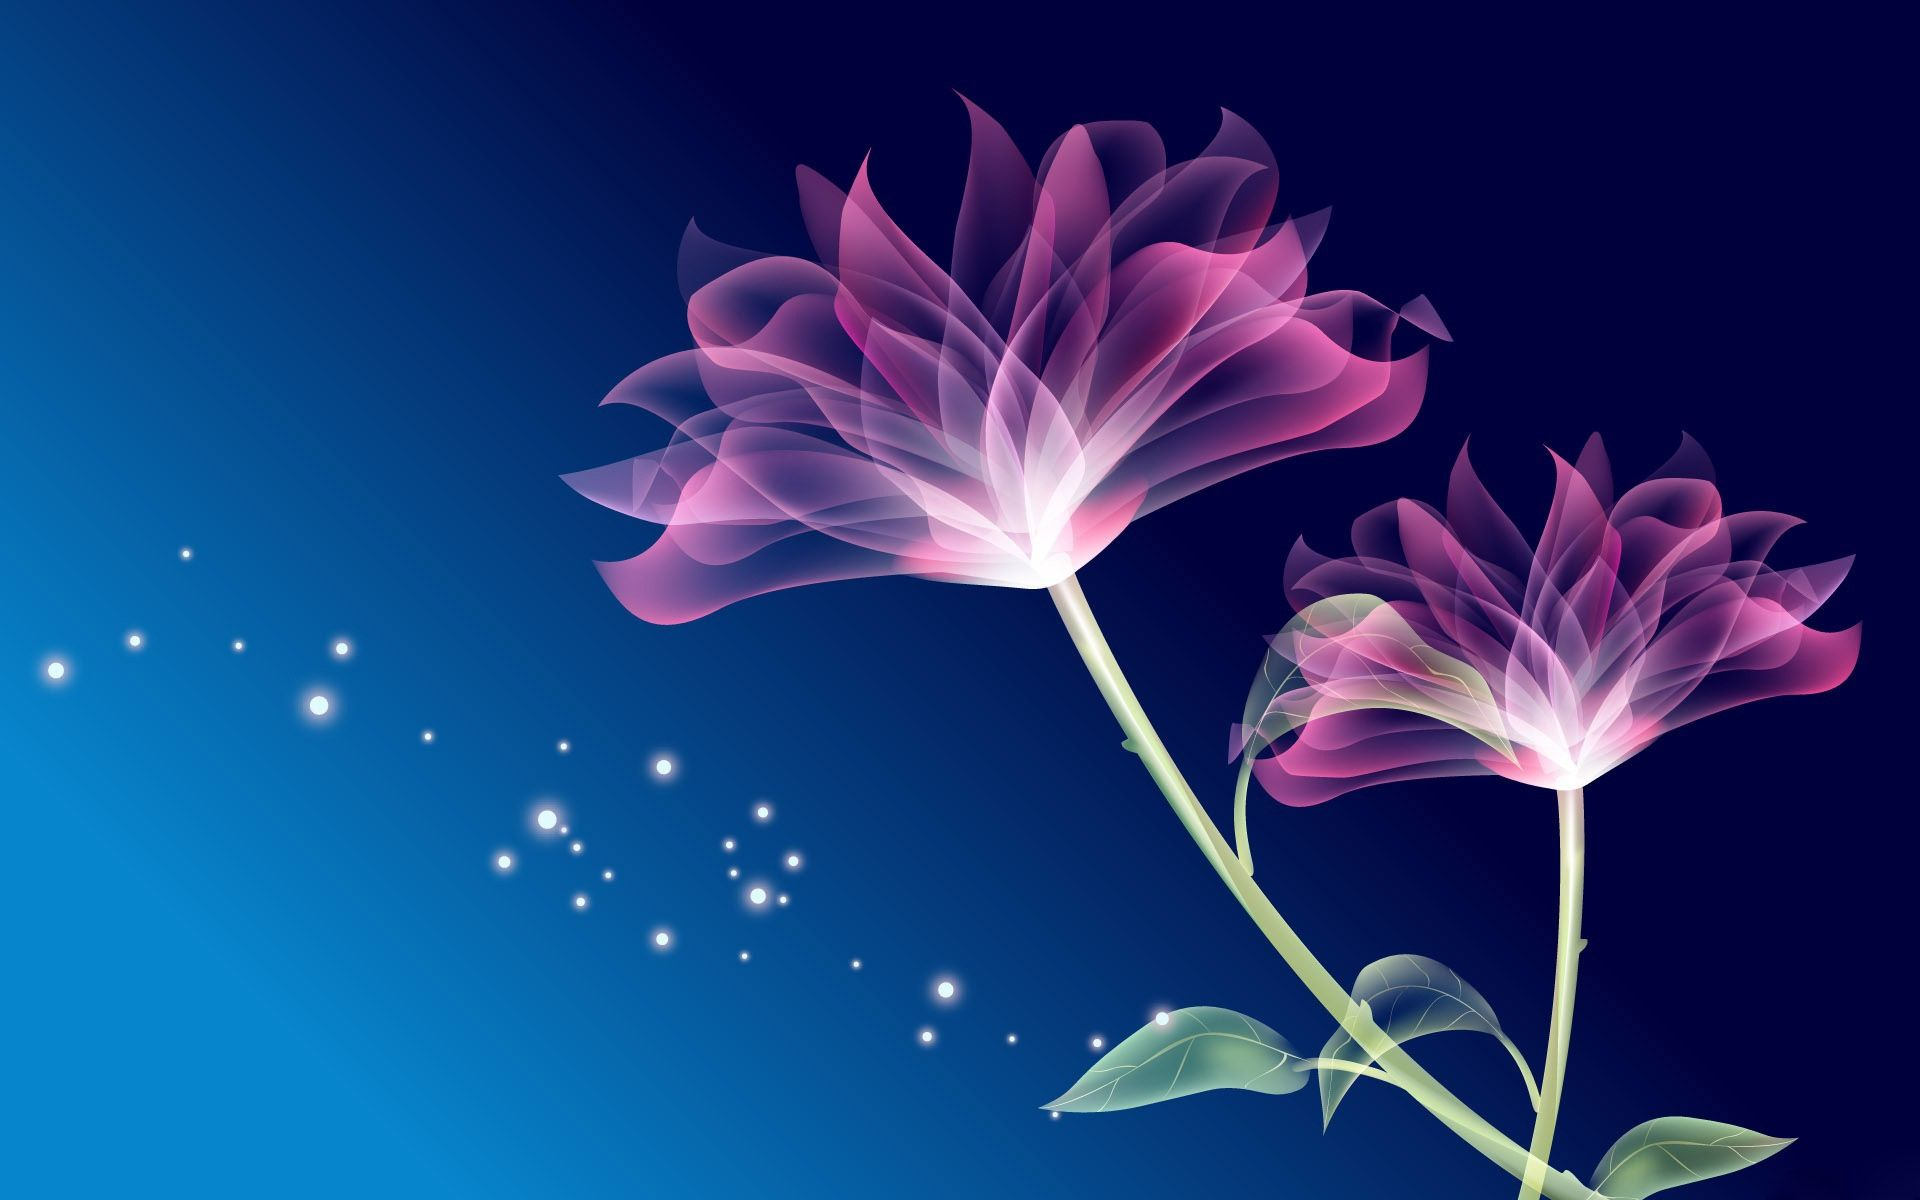 Download 3d Wallpaper Of Flowers Hd New 3d Wallpaper Of Flowers